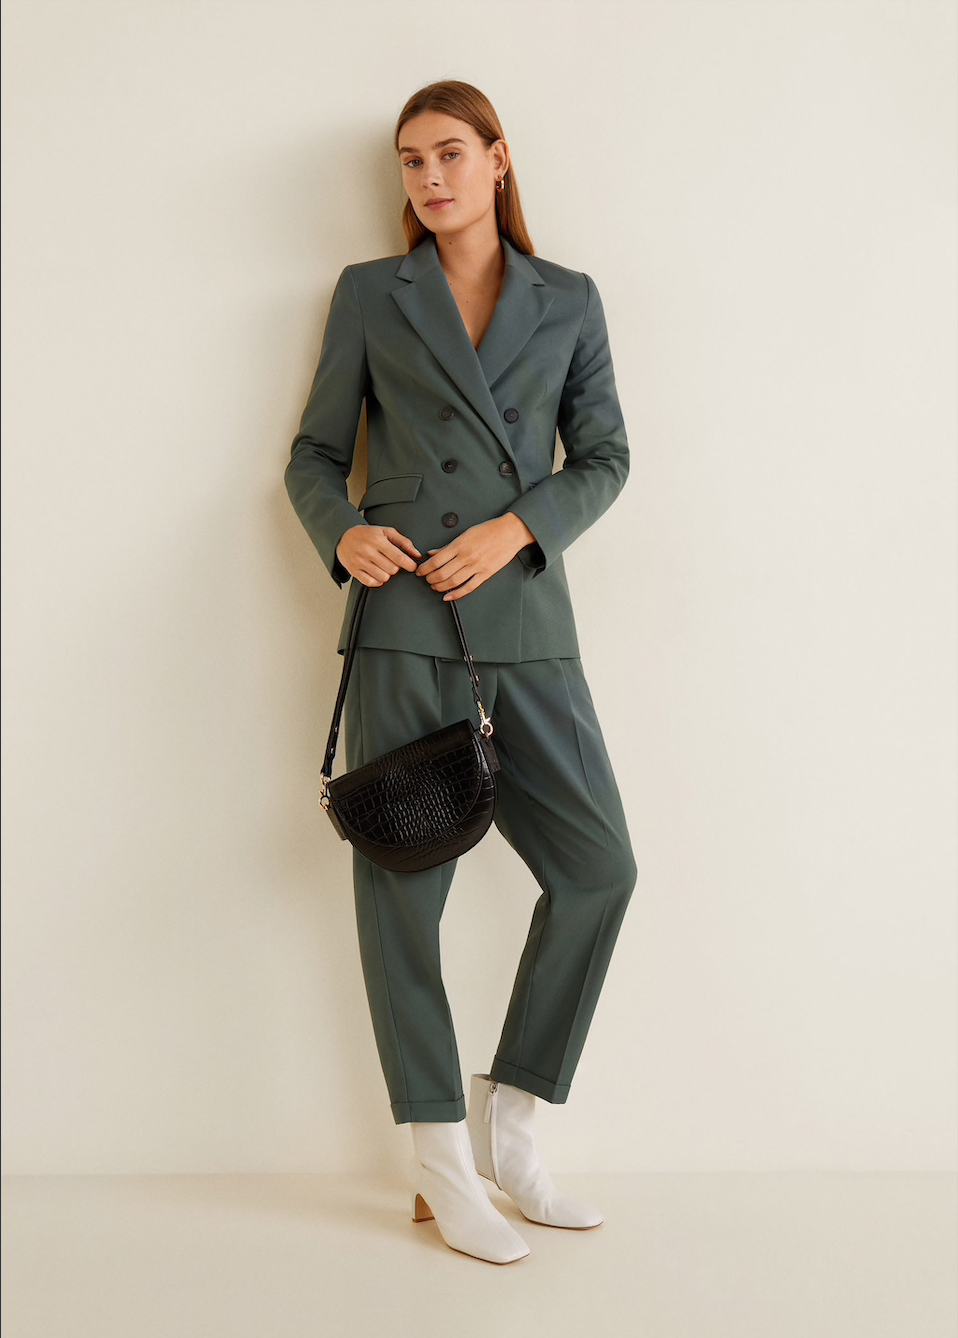 MANGO sage suit jacket, $129.95    MANGO sage suit pants, $79.95